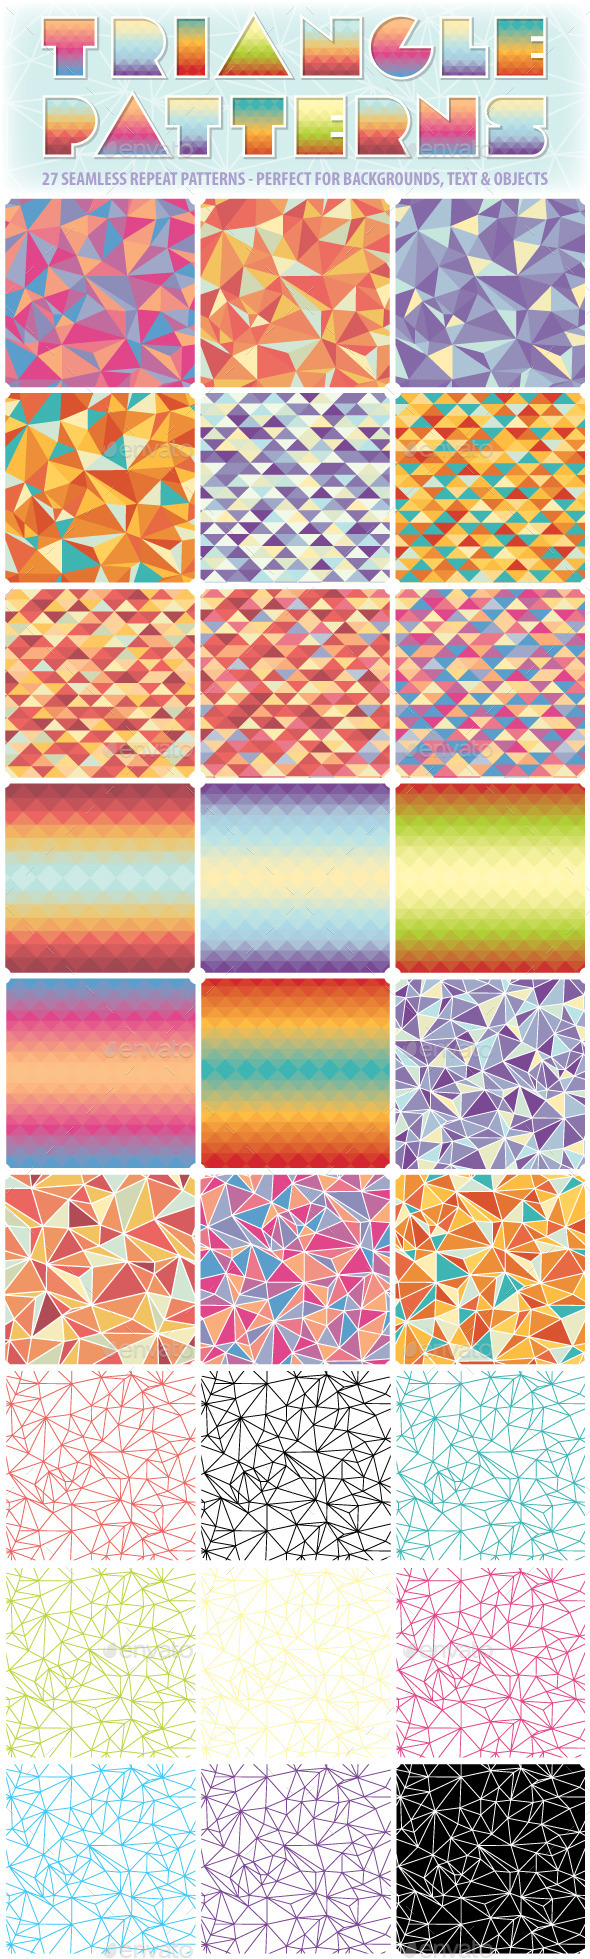 GraphicRiver Triangle Repeat Patterns 10041659